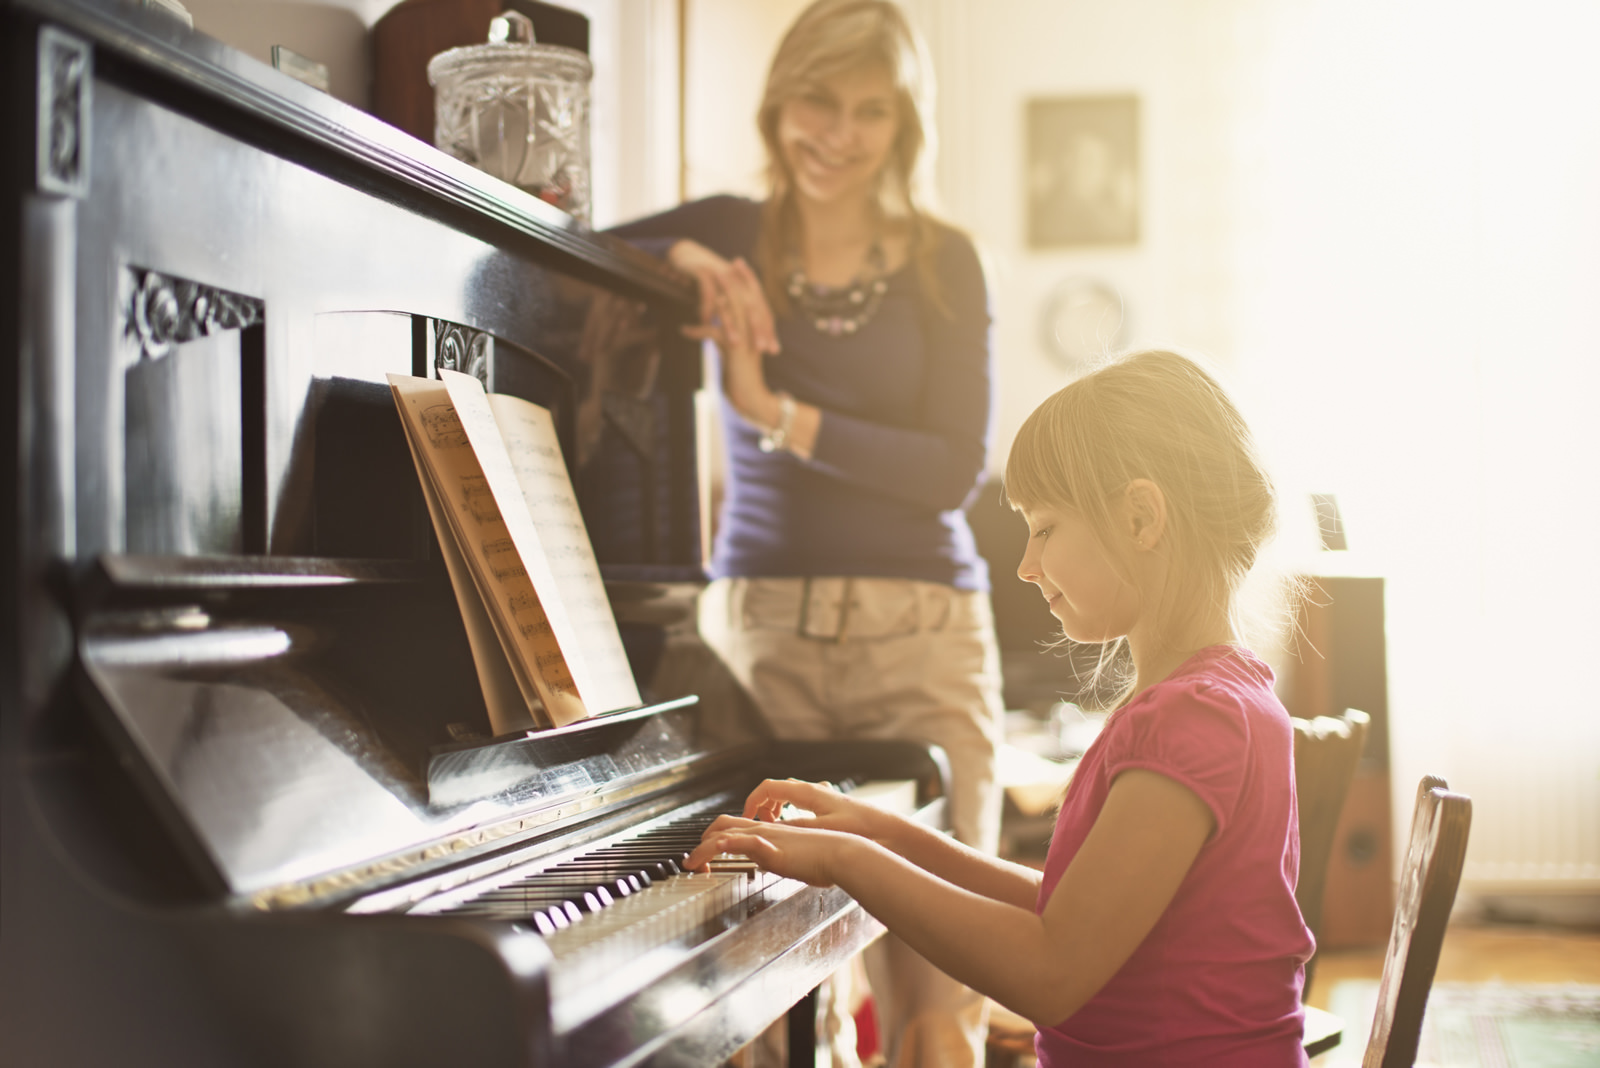 Background image of a young girl playing the piano